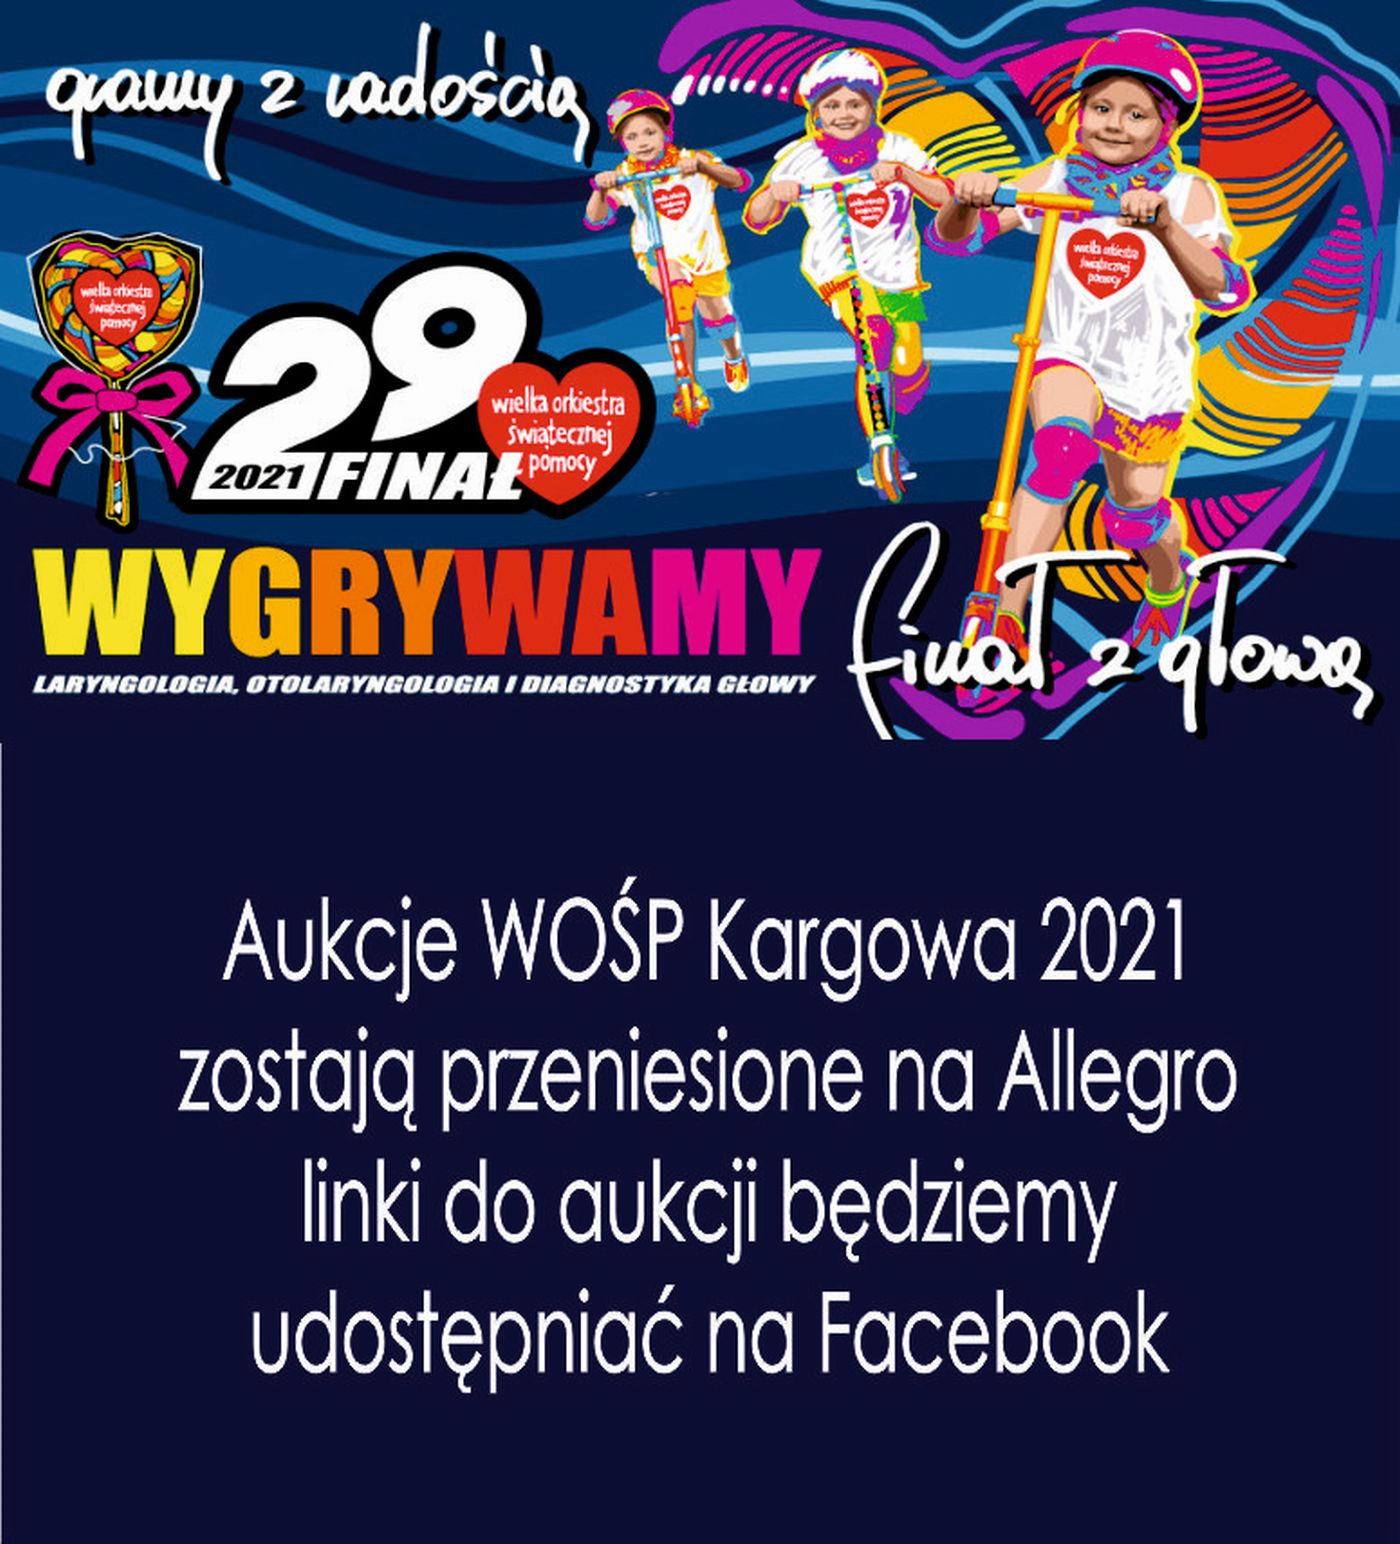 wosp 2021